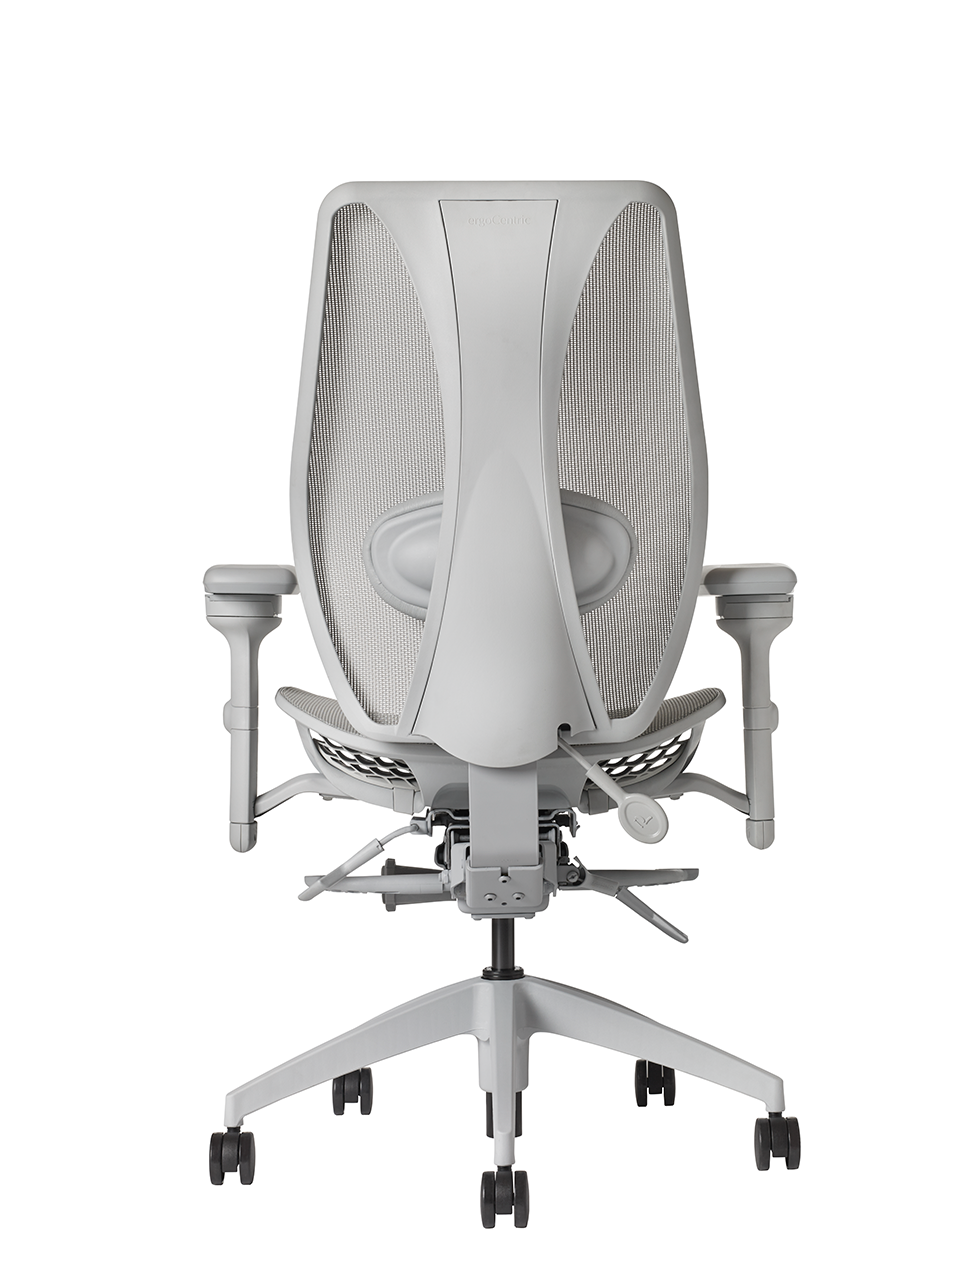 24 Hour Office Chair Tcentric Hybrid Ergonomic Chair From Ergocentric Ergonomic Chair Ergonomic Office Chair Office Chair